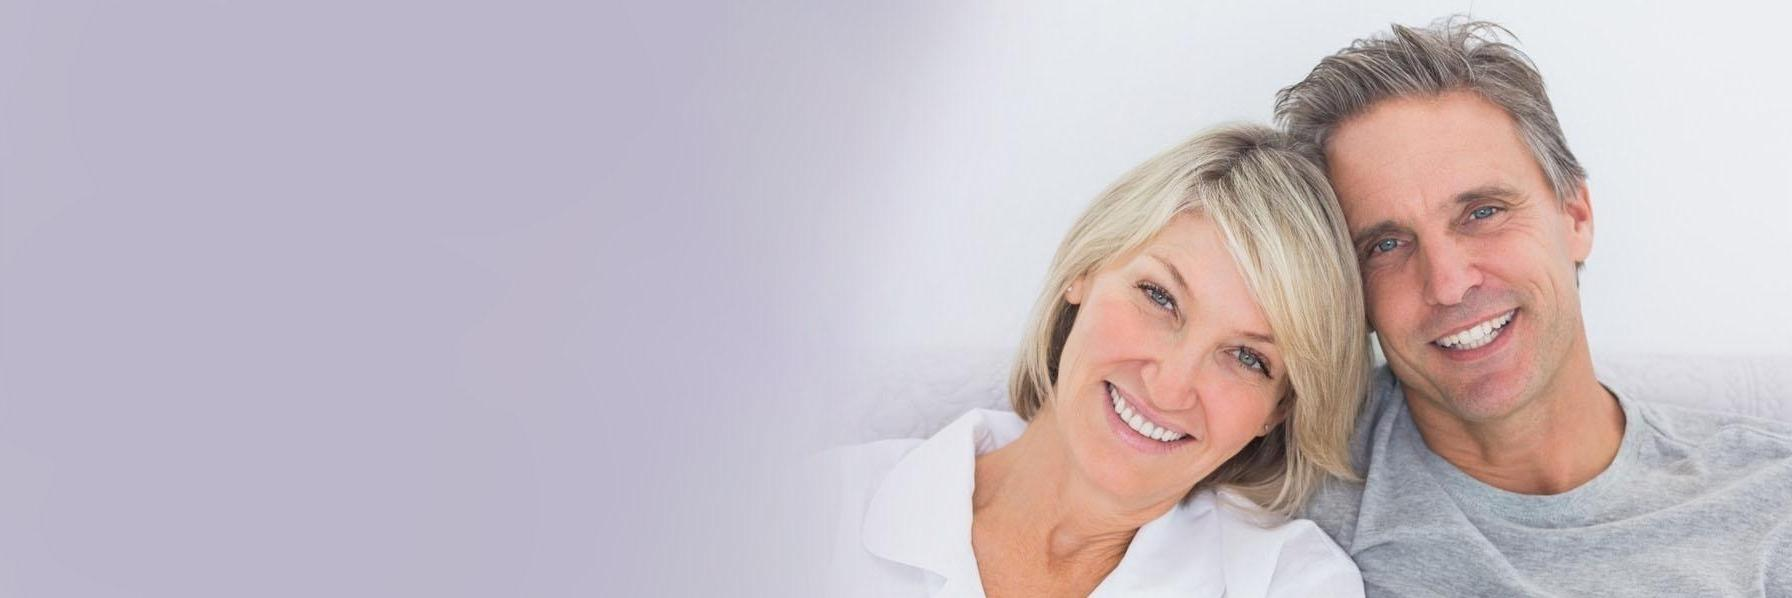 Dentures in Poway CA | Dr. Tae Chung